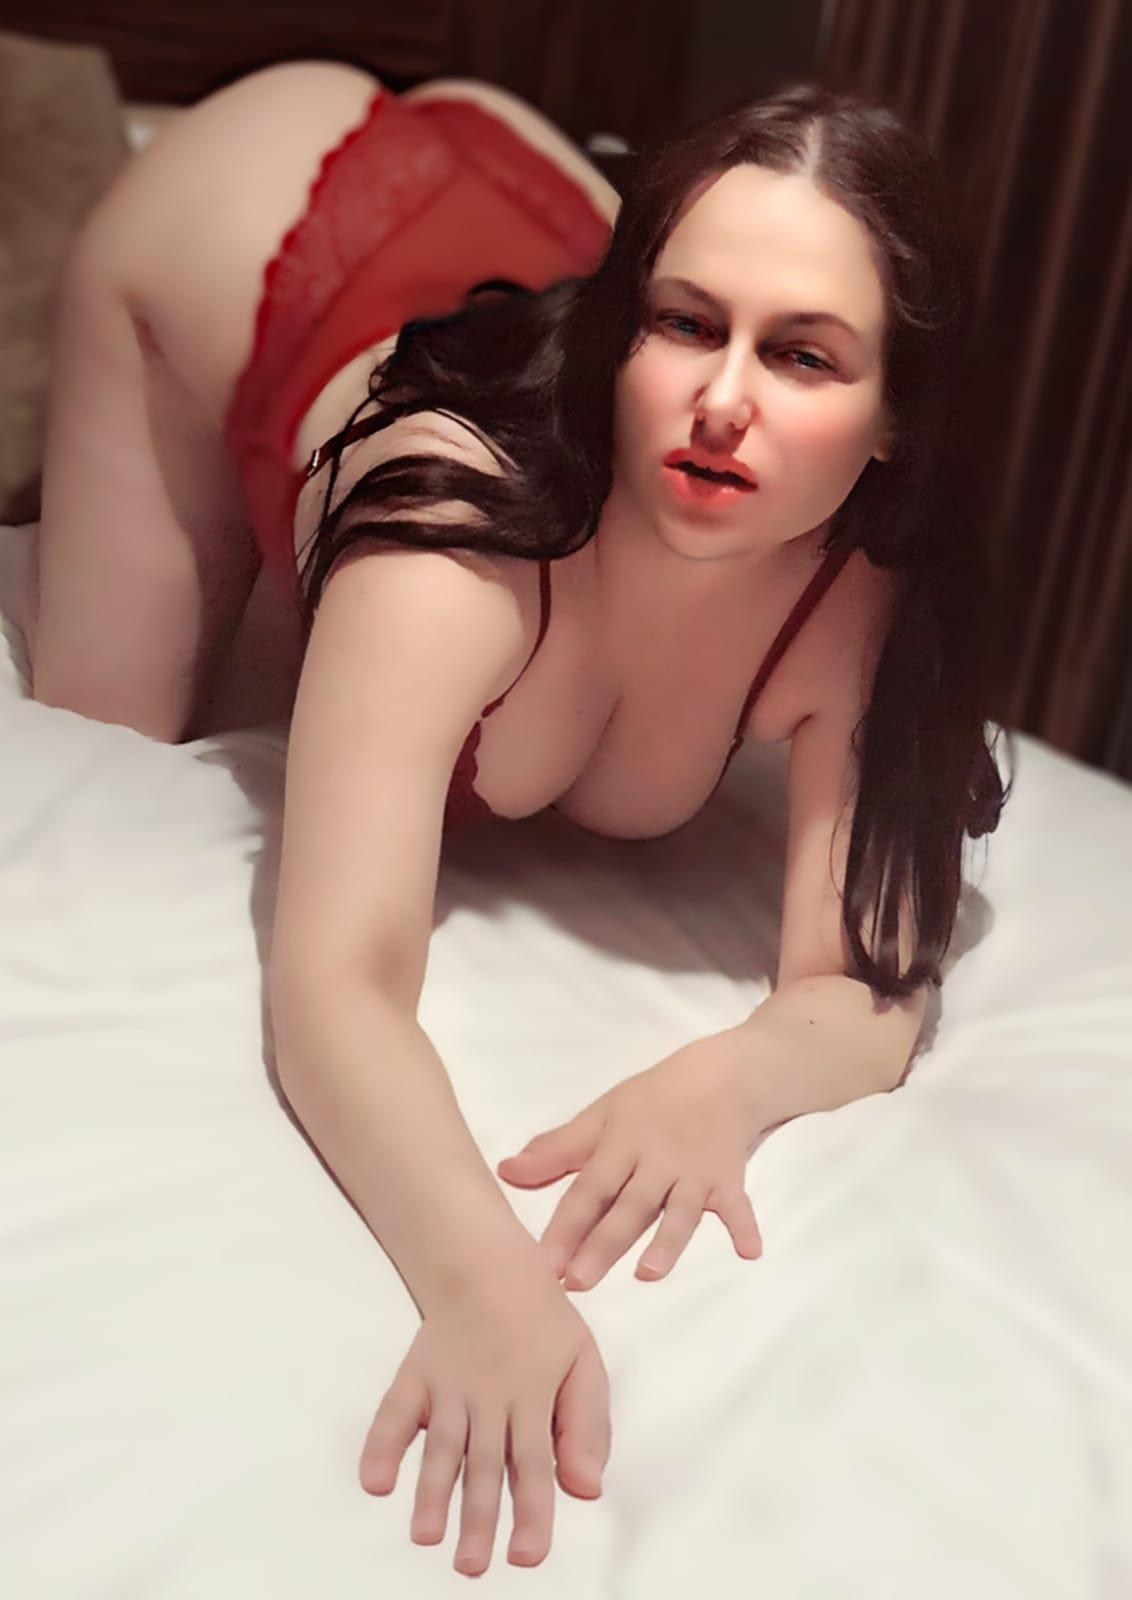 Scarlett from Outcall Massage London